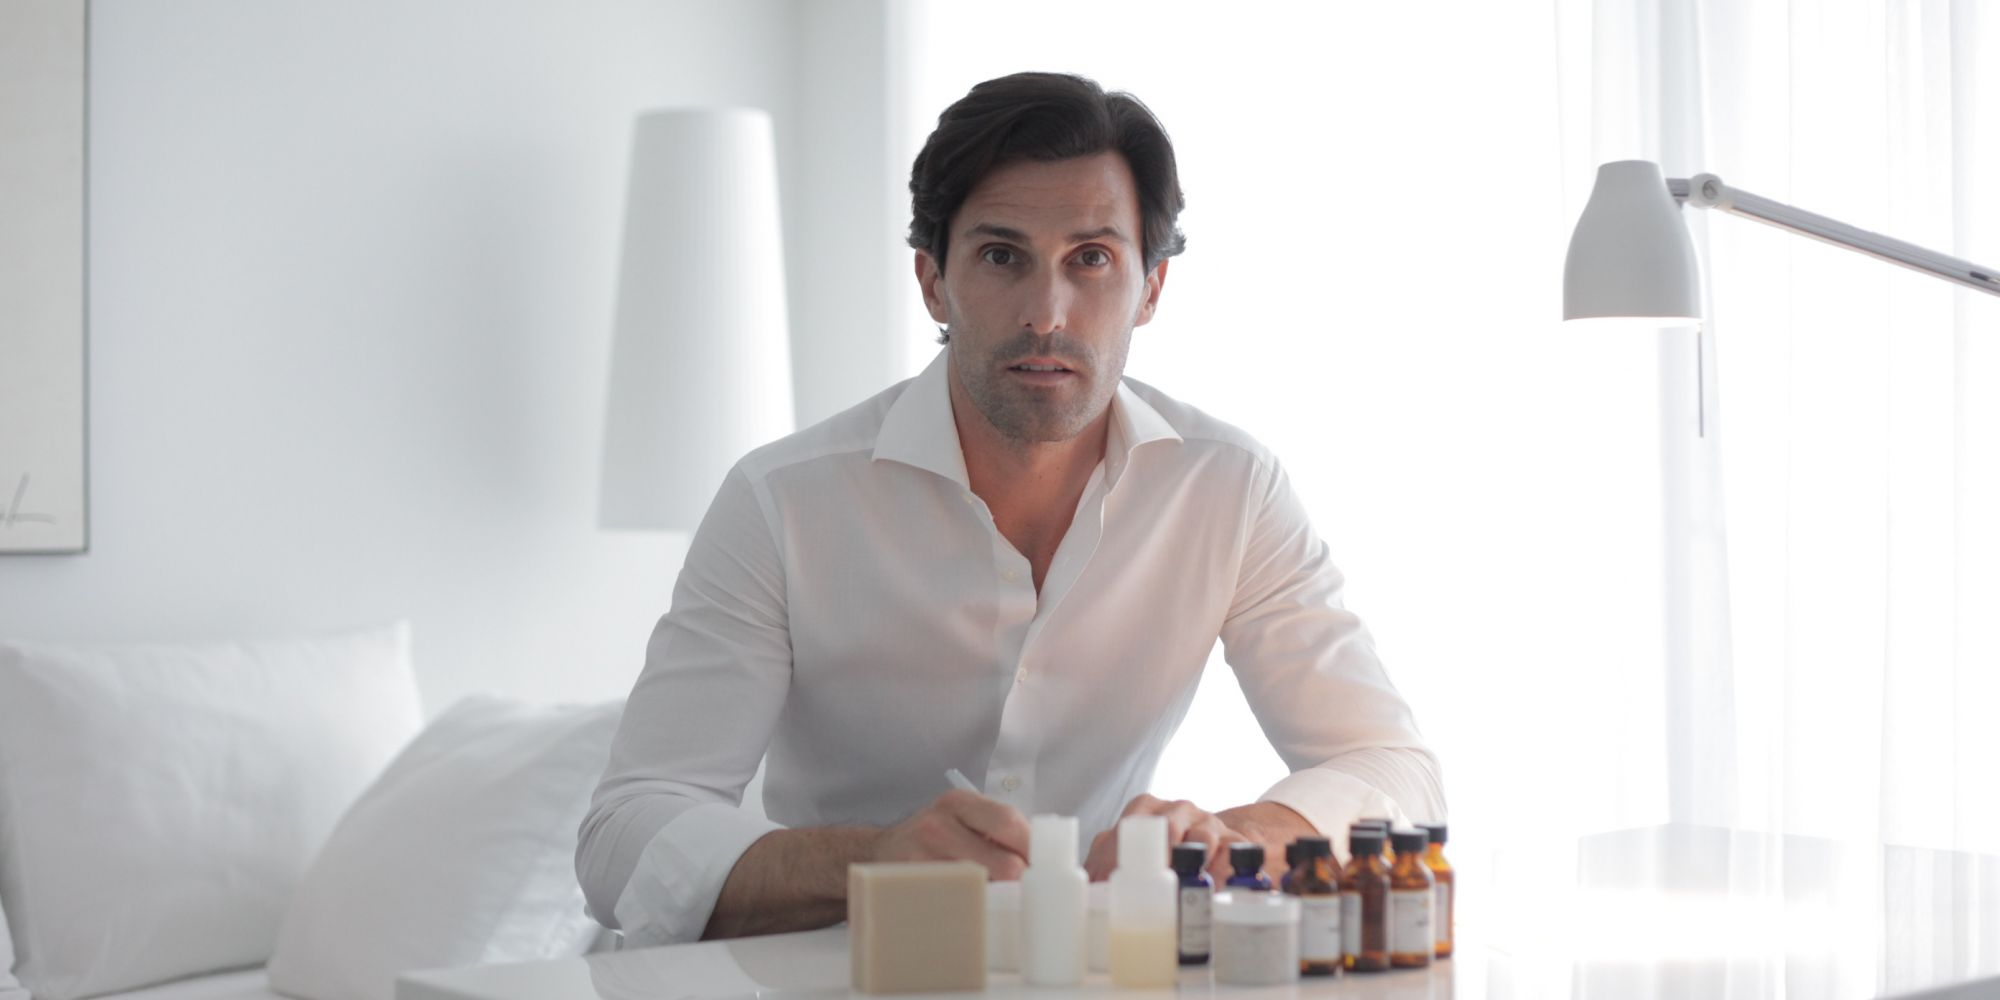 Ayres Beauty: An Experienced Beauty Exec Faces Entrepreneurial Challenges